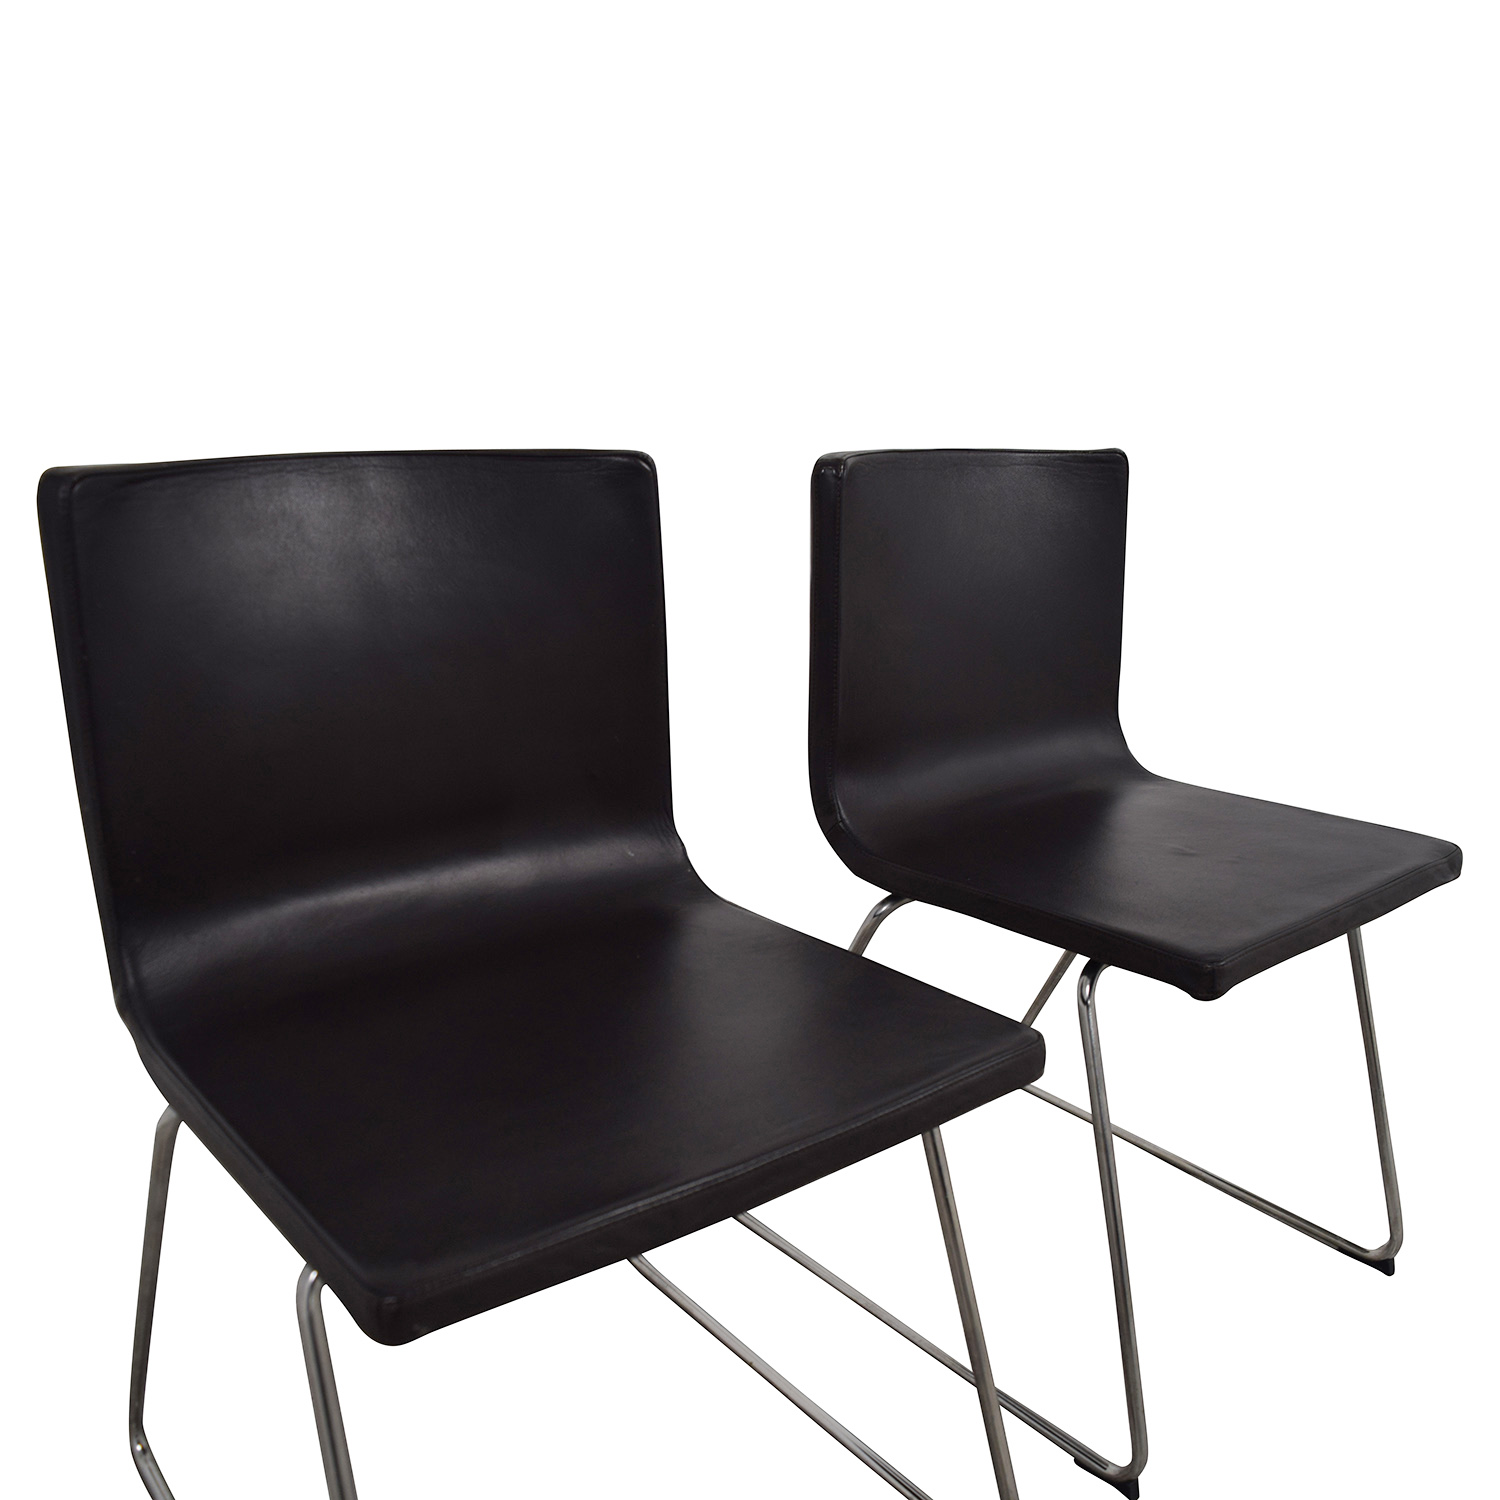 OFF IKEA IKEA Black Accent Chairs Chairs